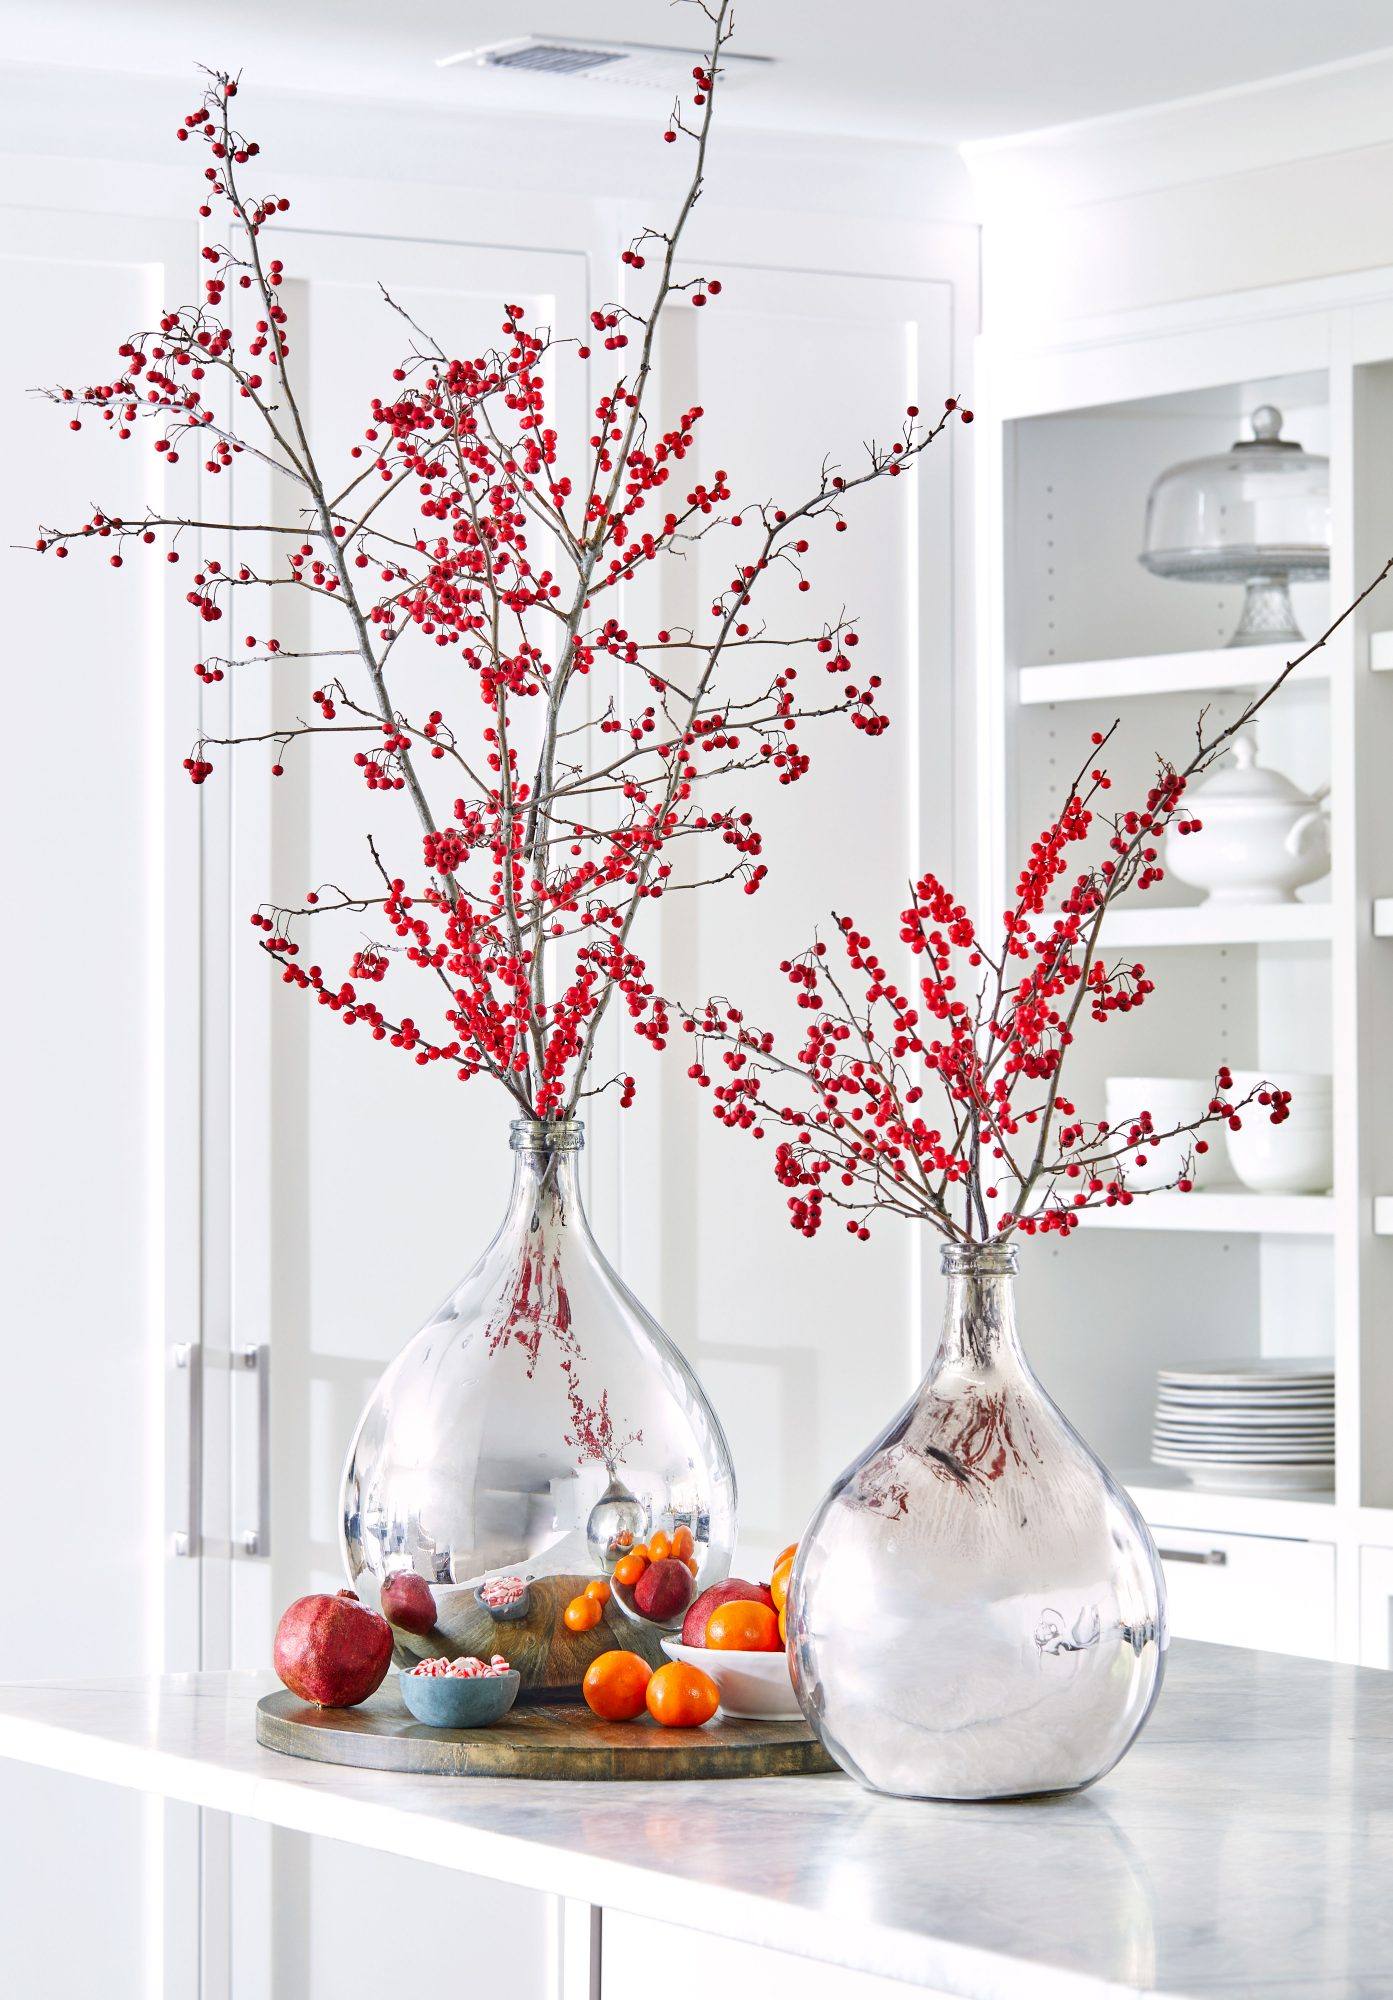 Mercury Glass Vase with holly berry branches